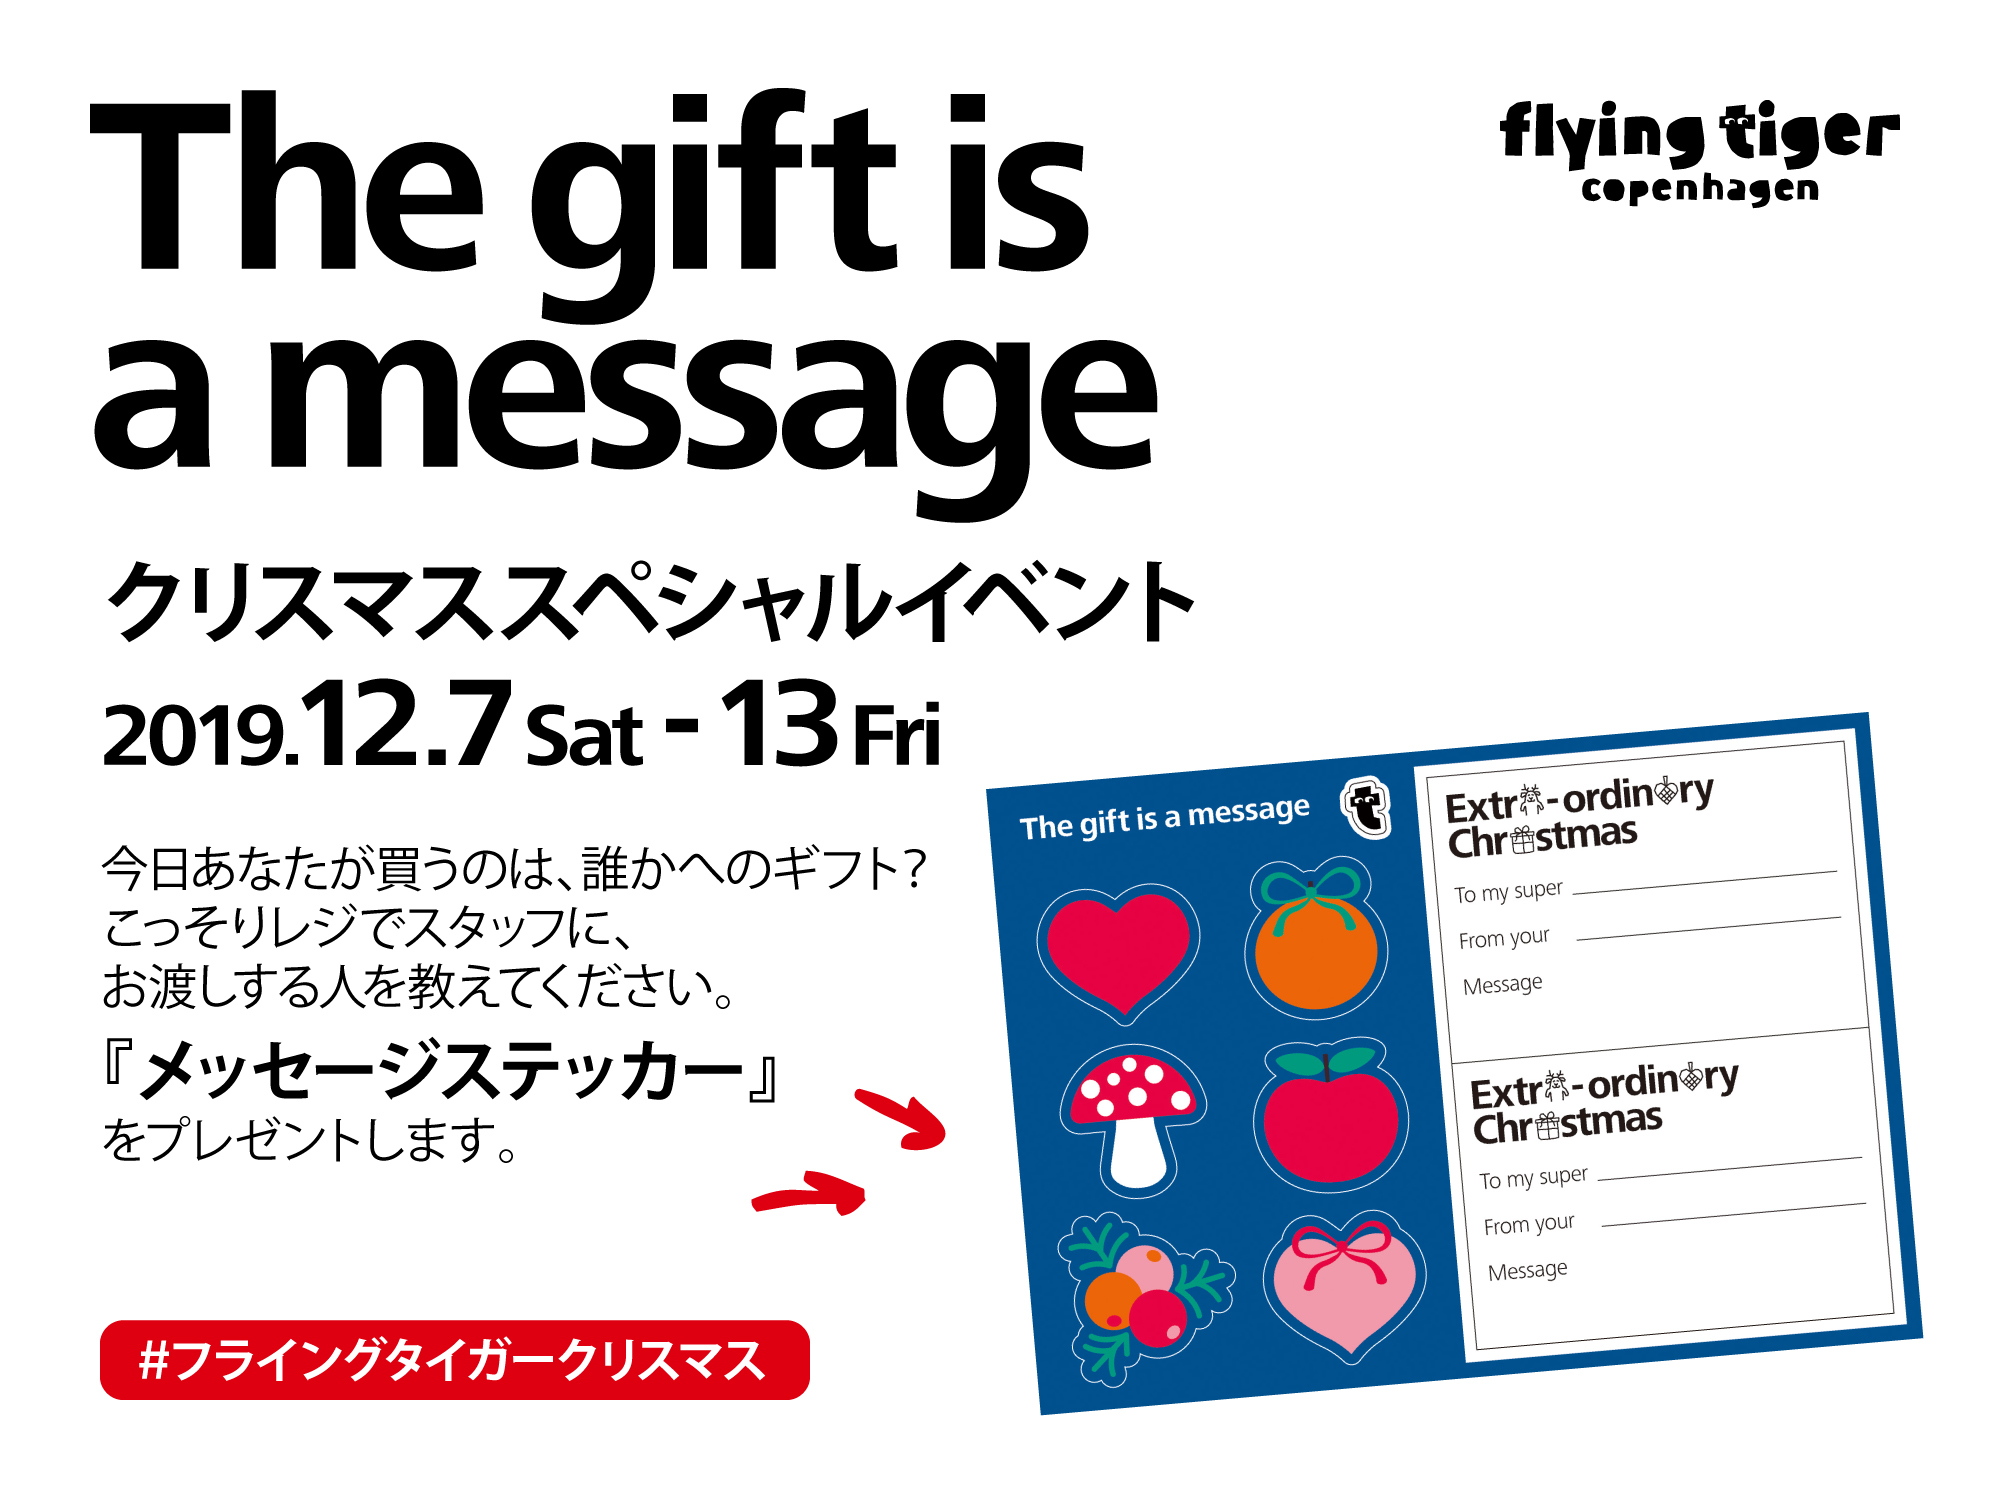 The gift is a message